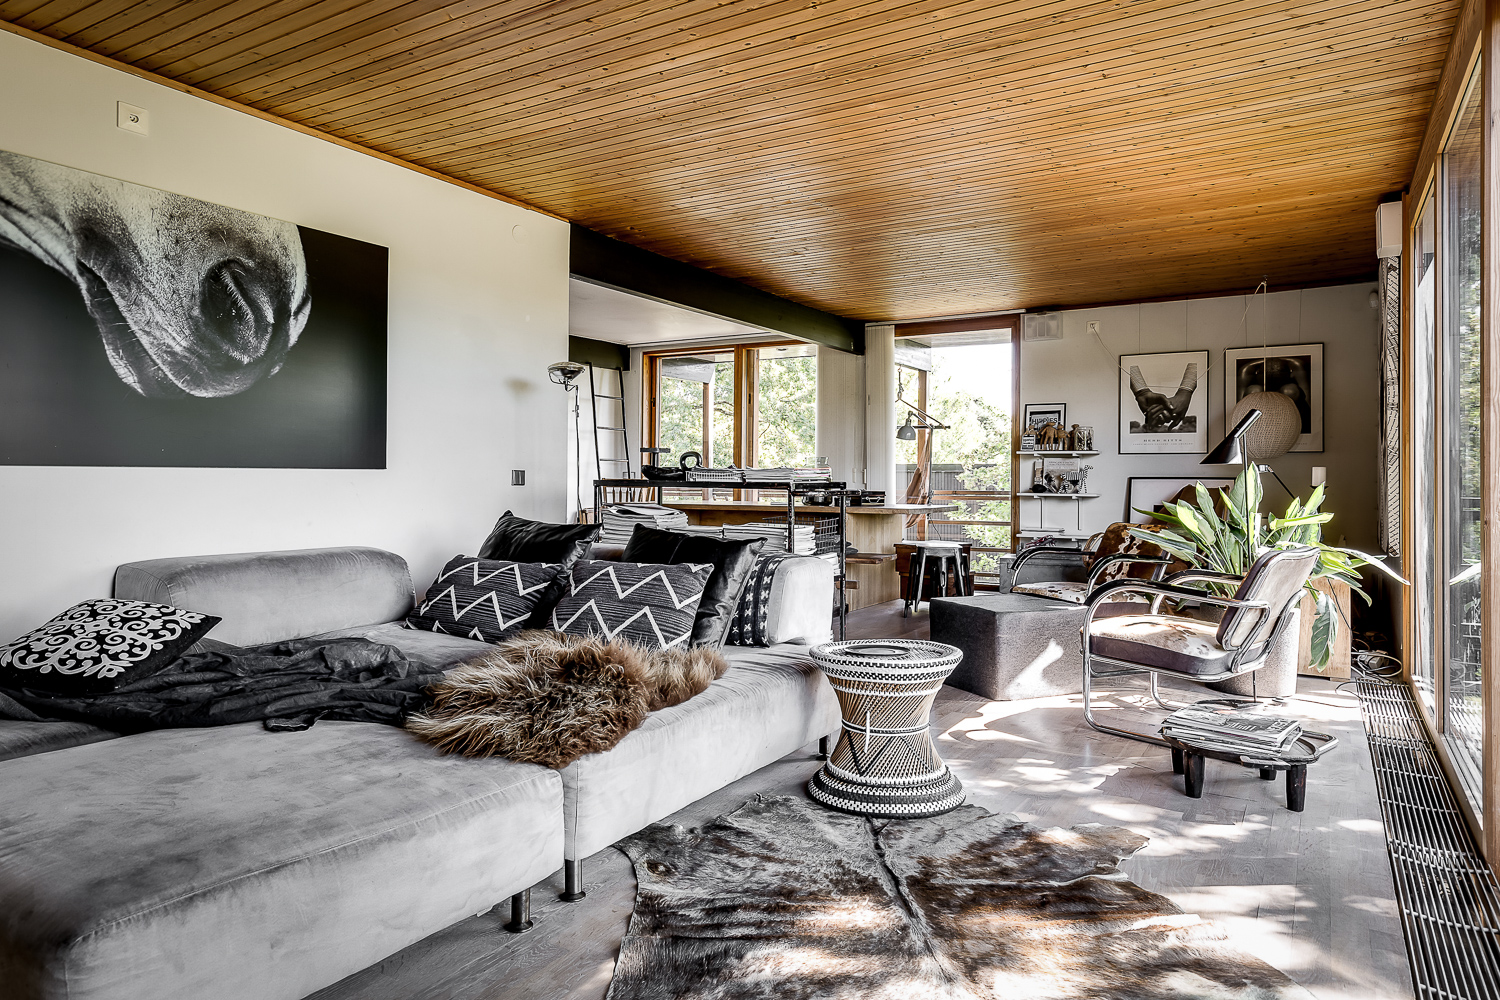 Nordic villa with gray sofa, cowhide, pattern pillows